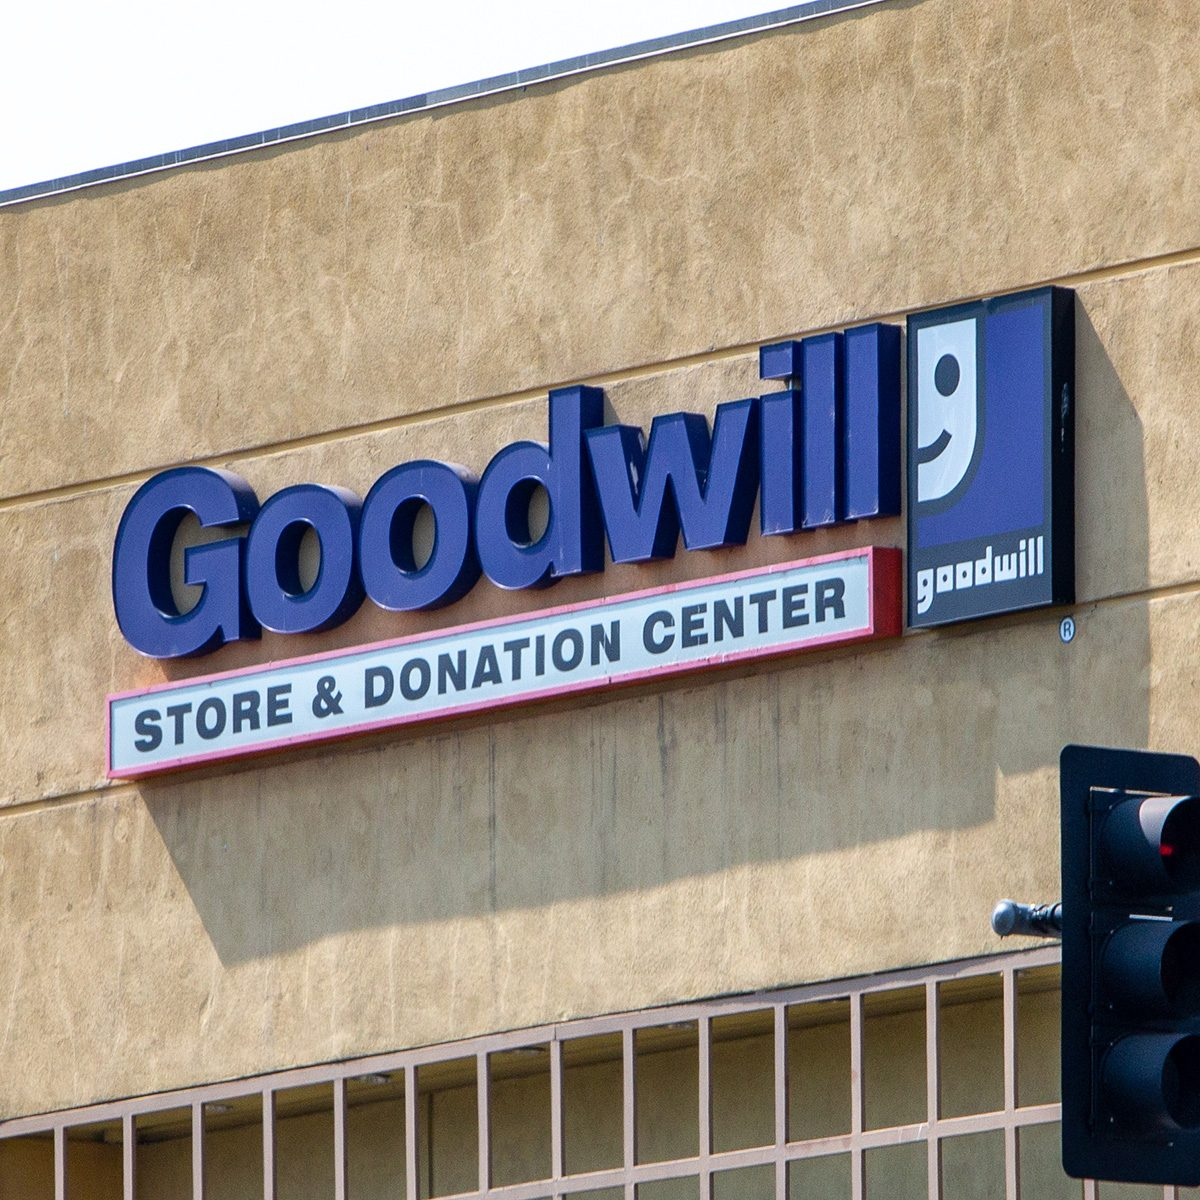 13 Valuable Things to Look for at Goodwill